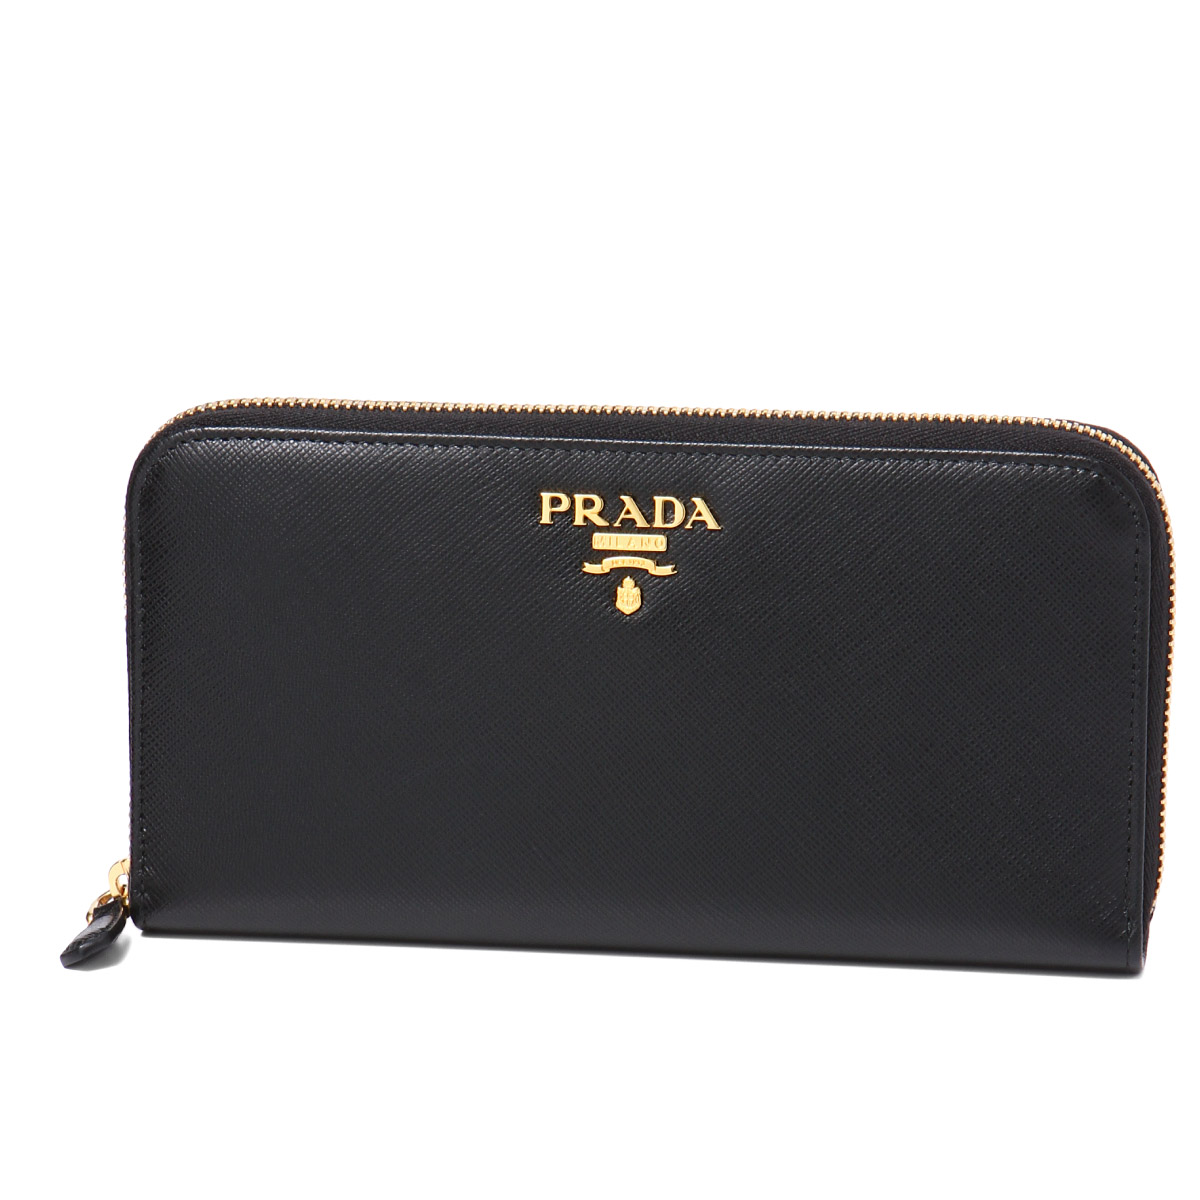 9359b8cb55e importshopdouble  PRADA Prada zip around wallet NERO black